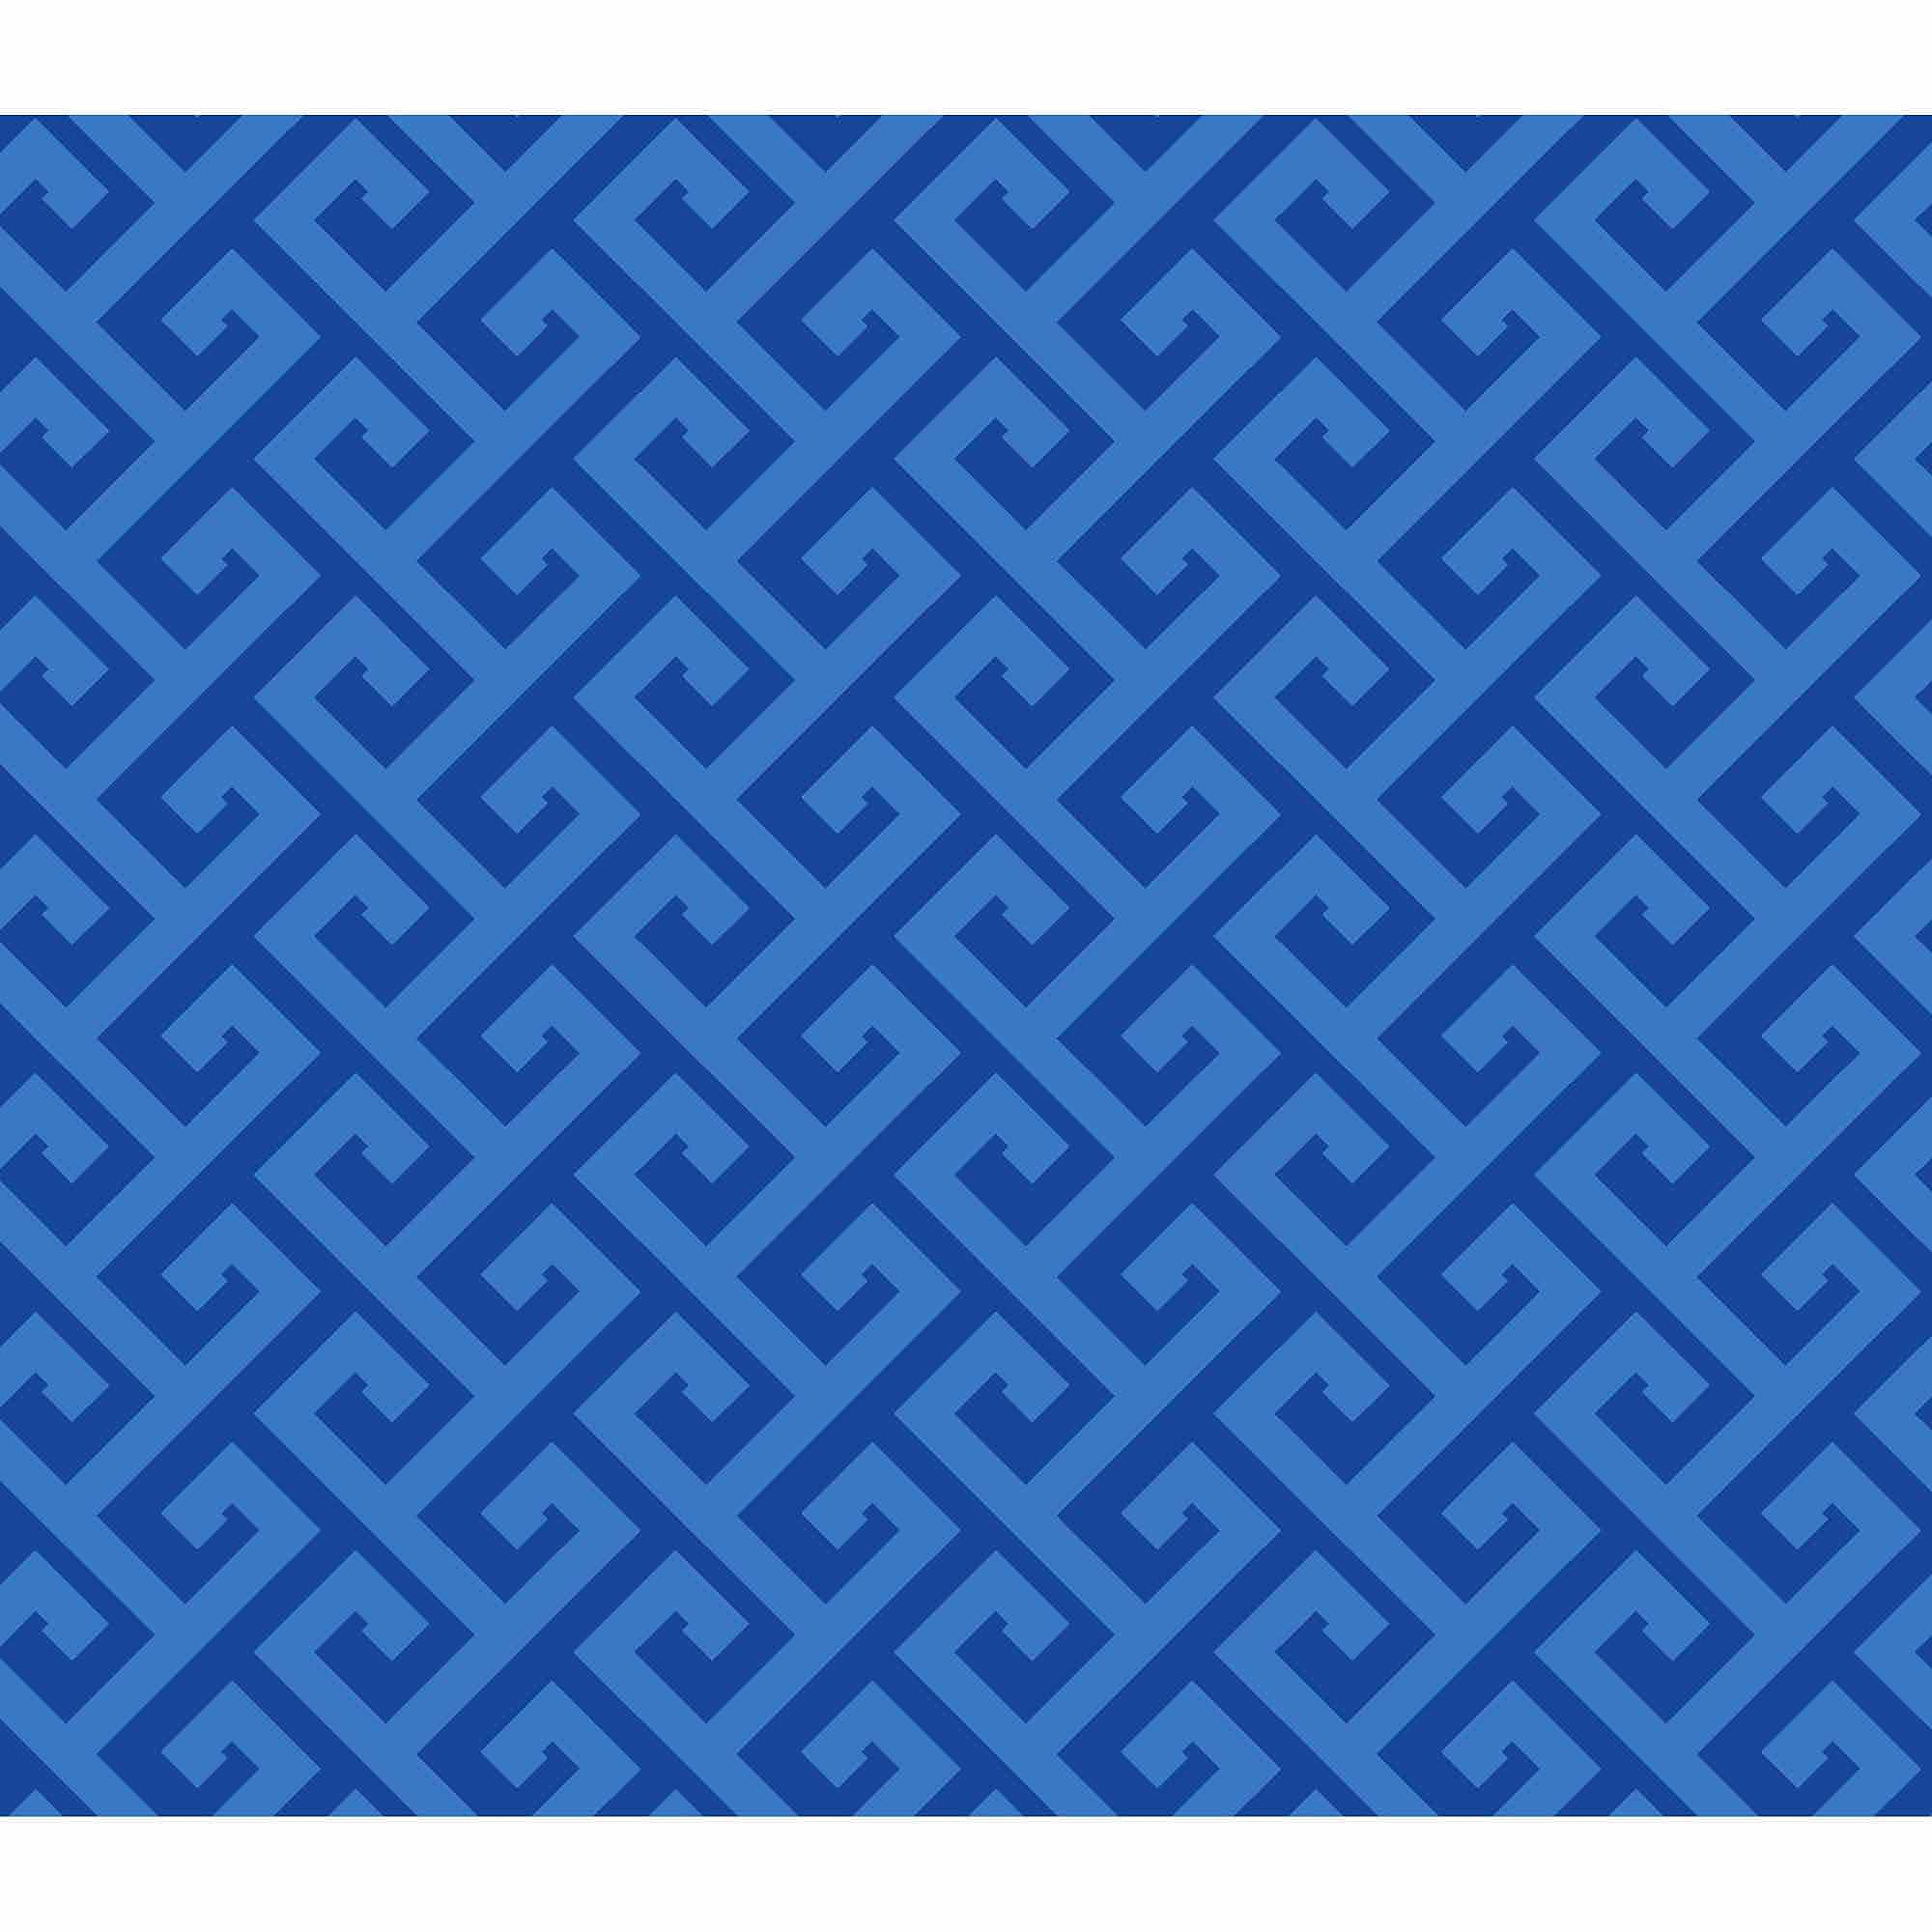 Springs Creative Cotton Blenders Tonal Greek Key, Blue, Fabric by the Yard